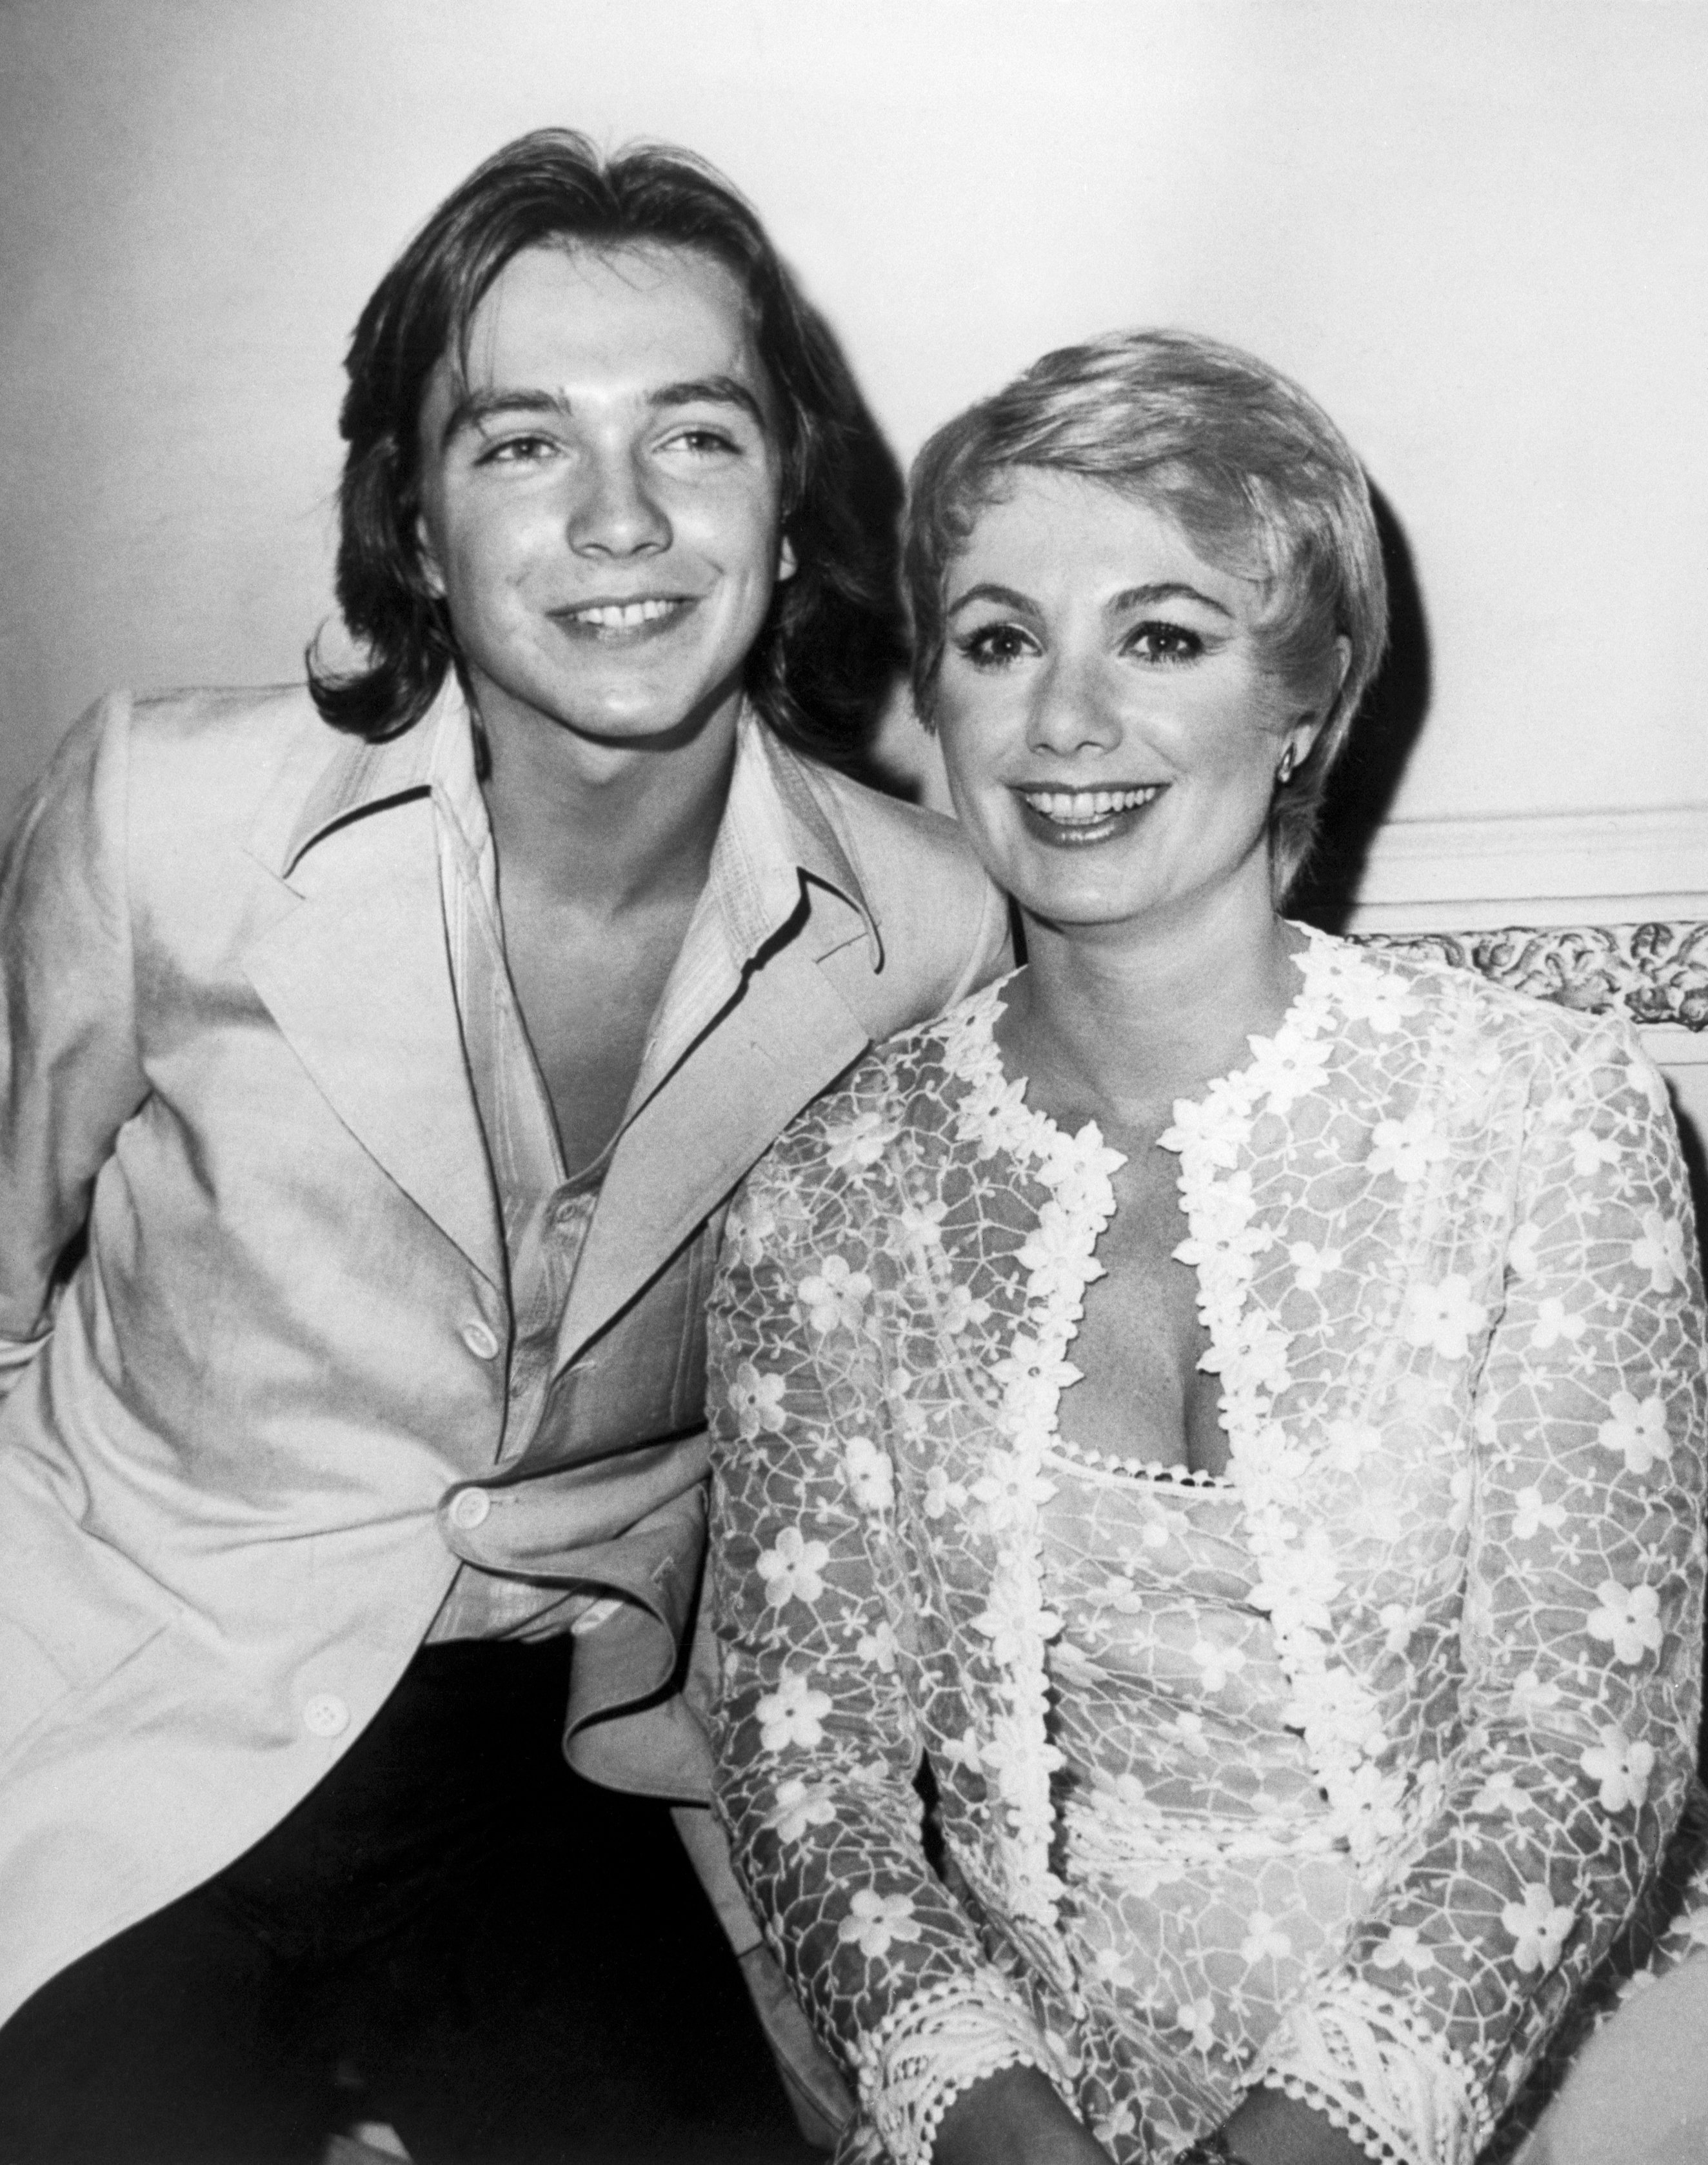 Image Credit: Getty Images / Actress and singer, Shirley Jones poses for a photo with David Cassidy.